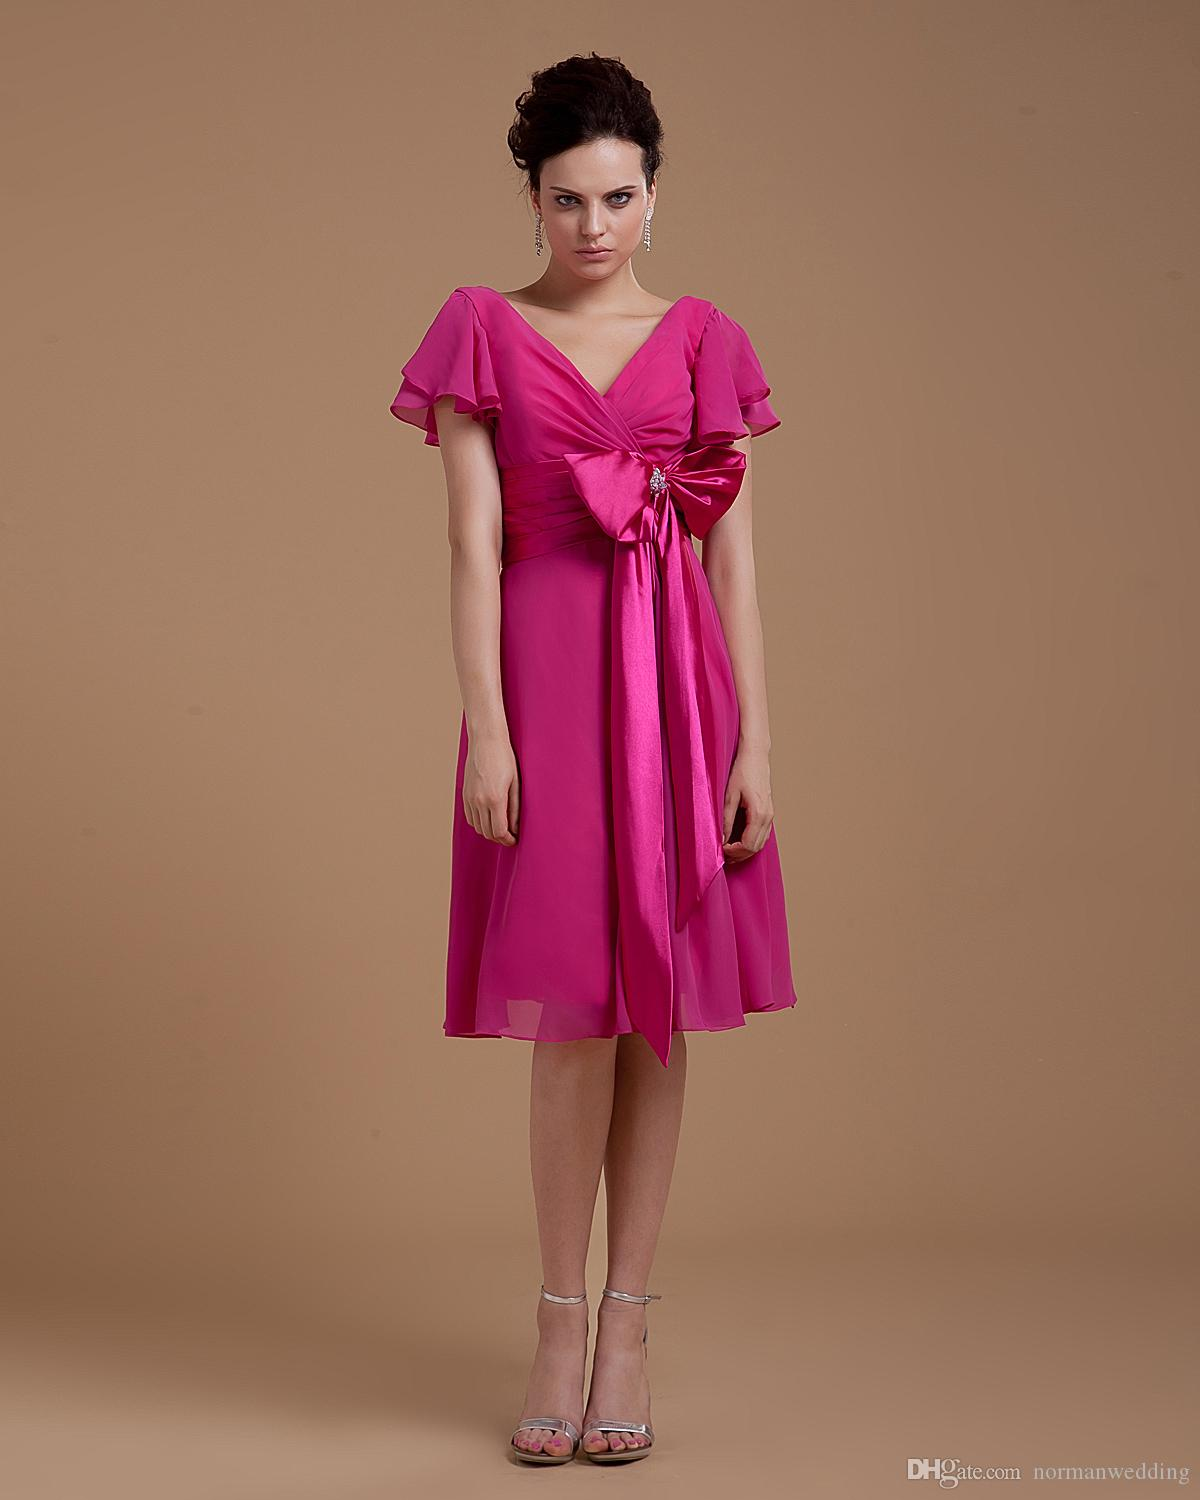 Vintage fuchsia bridesmaid dresses 2017 cheap bow knee length vintage fuchsia bridesmaid dresses 2017 cheap bow knee length cocktail party gowns chiffon maid of honor gowns green bridesmaid dresses long gowns from ombrellifo Image collections